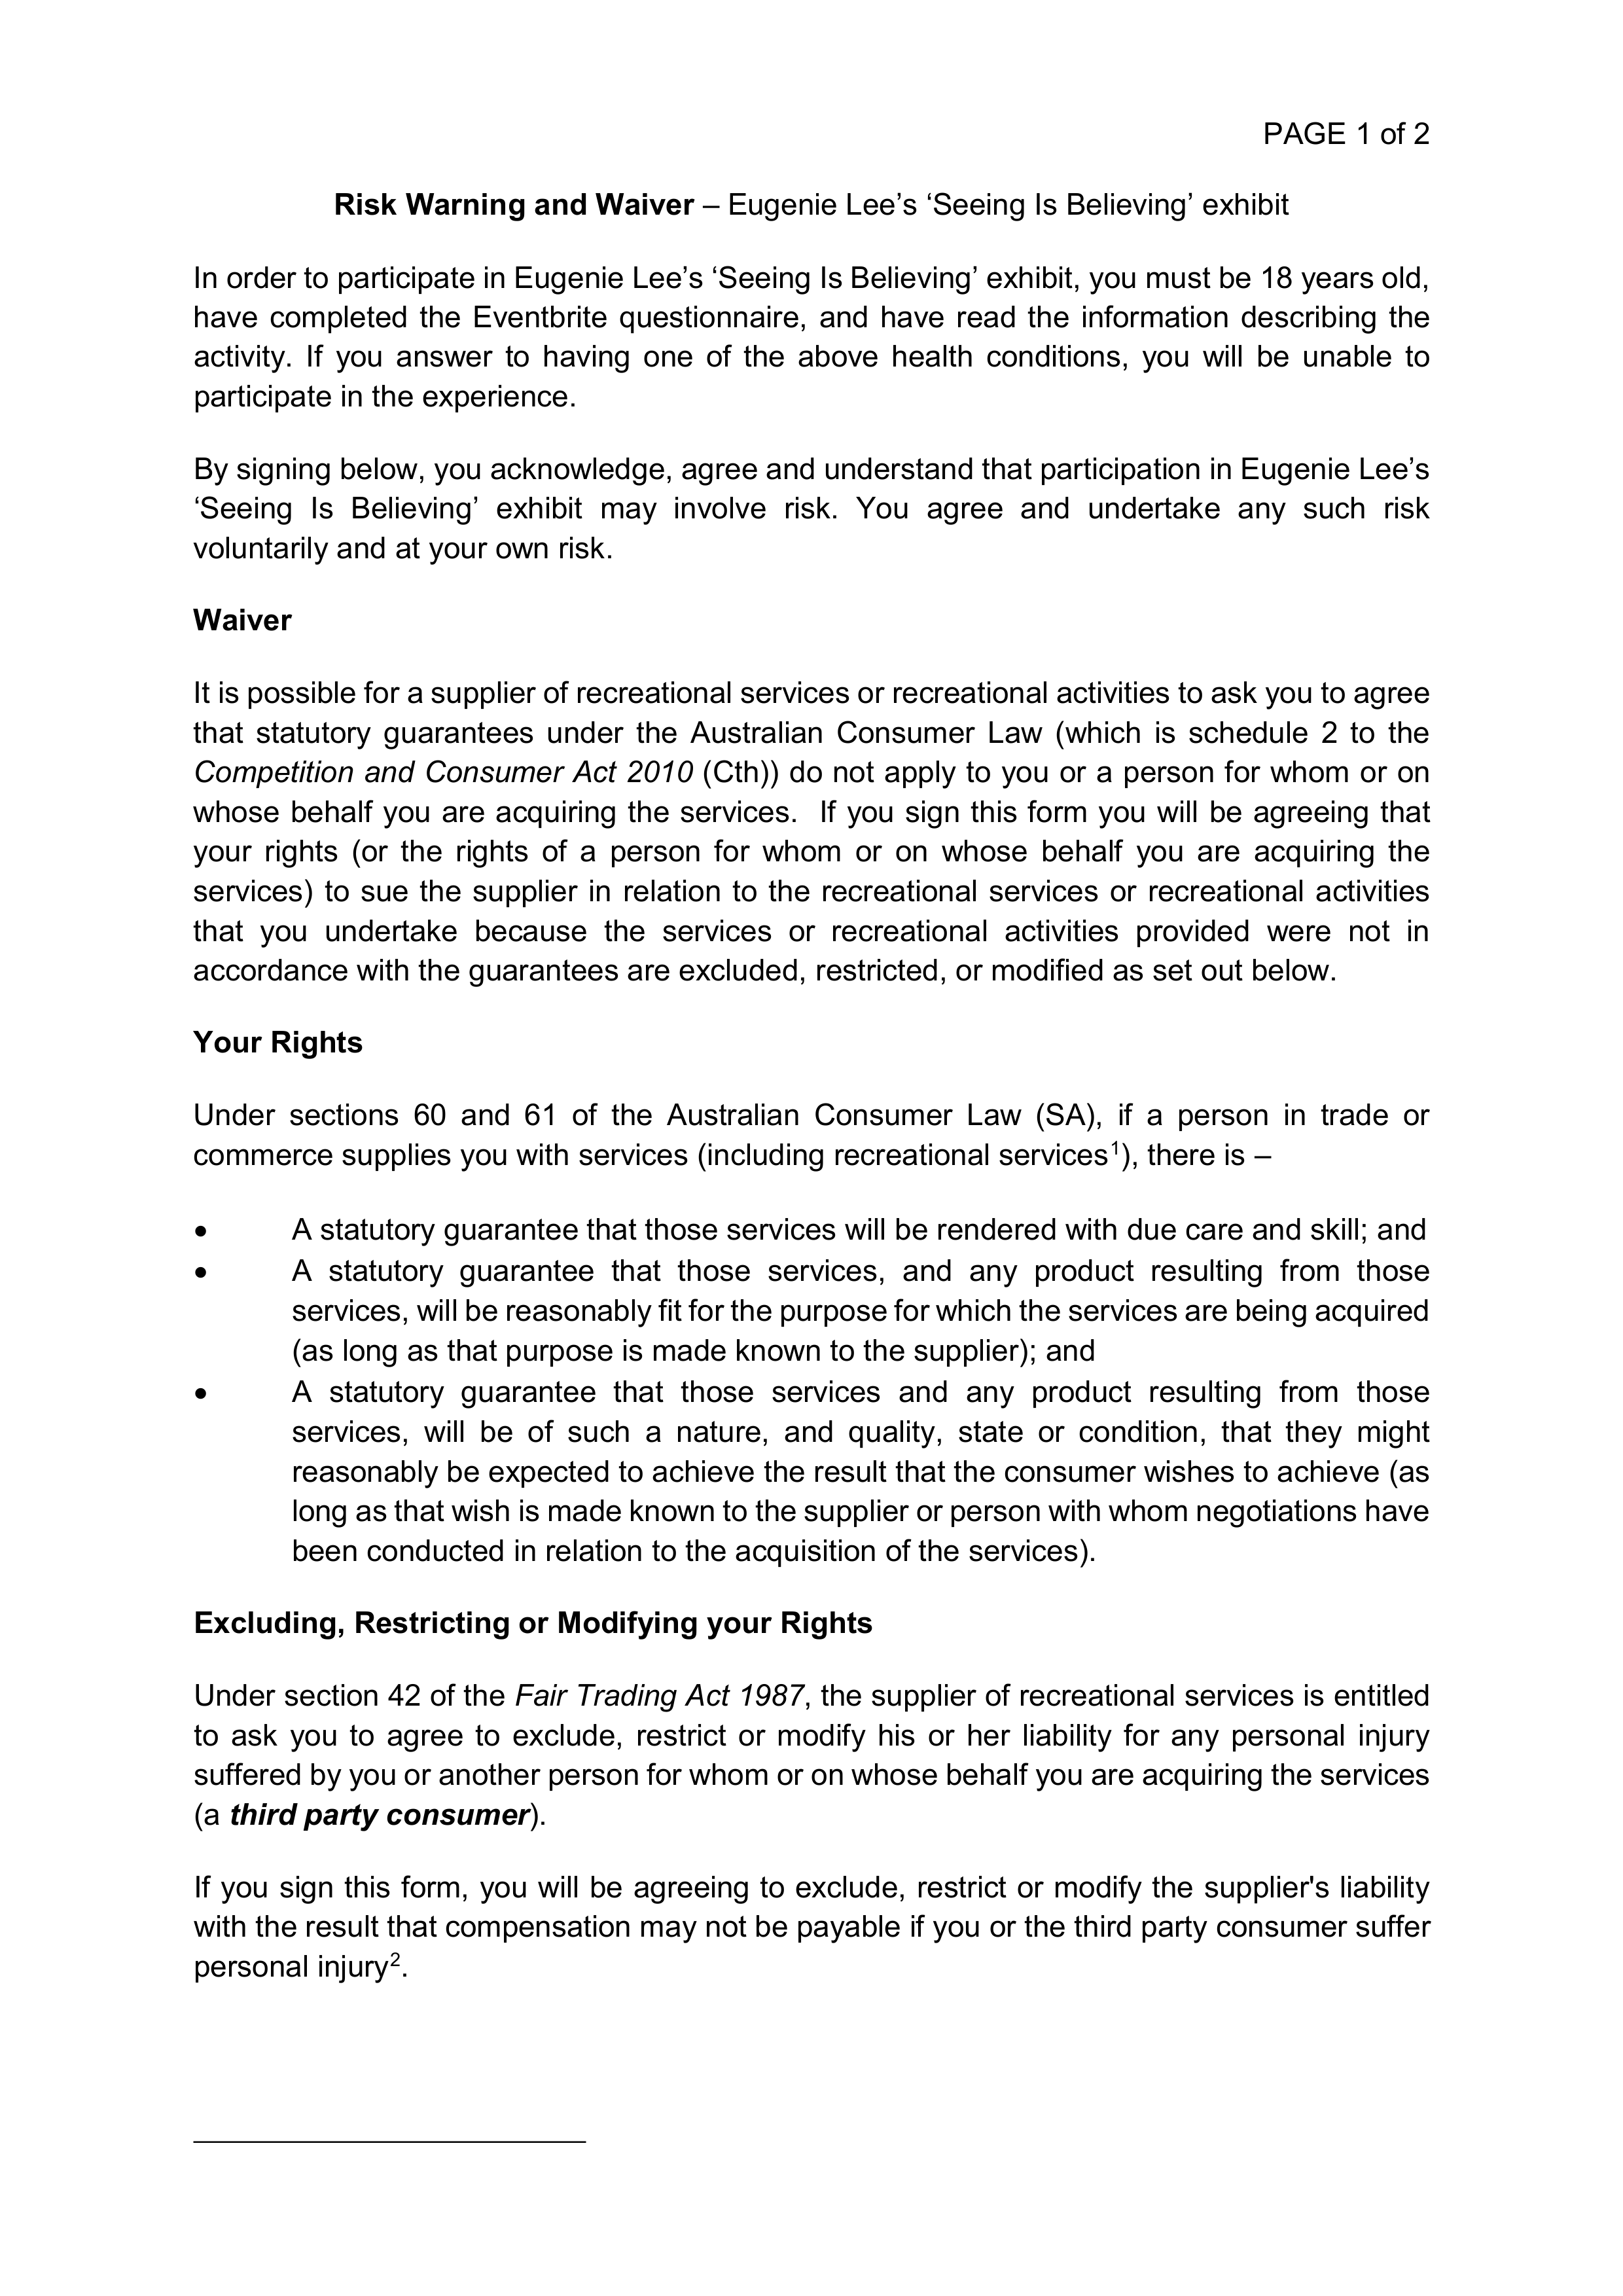 Consent and waiver page 1